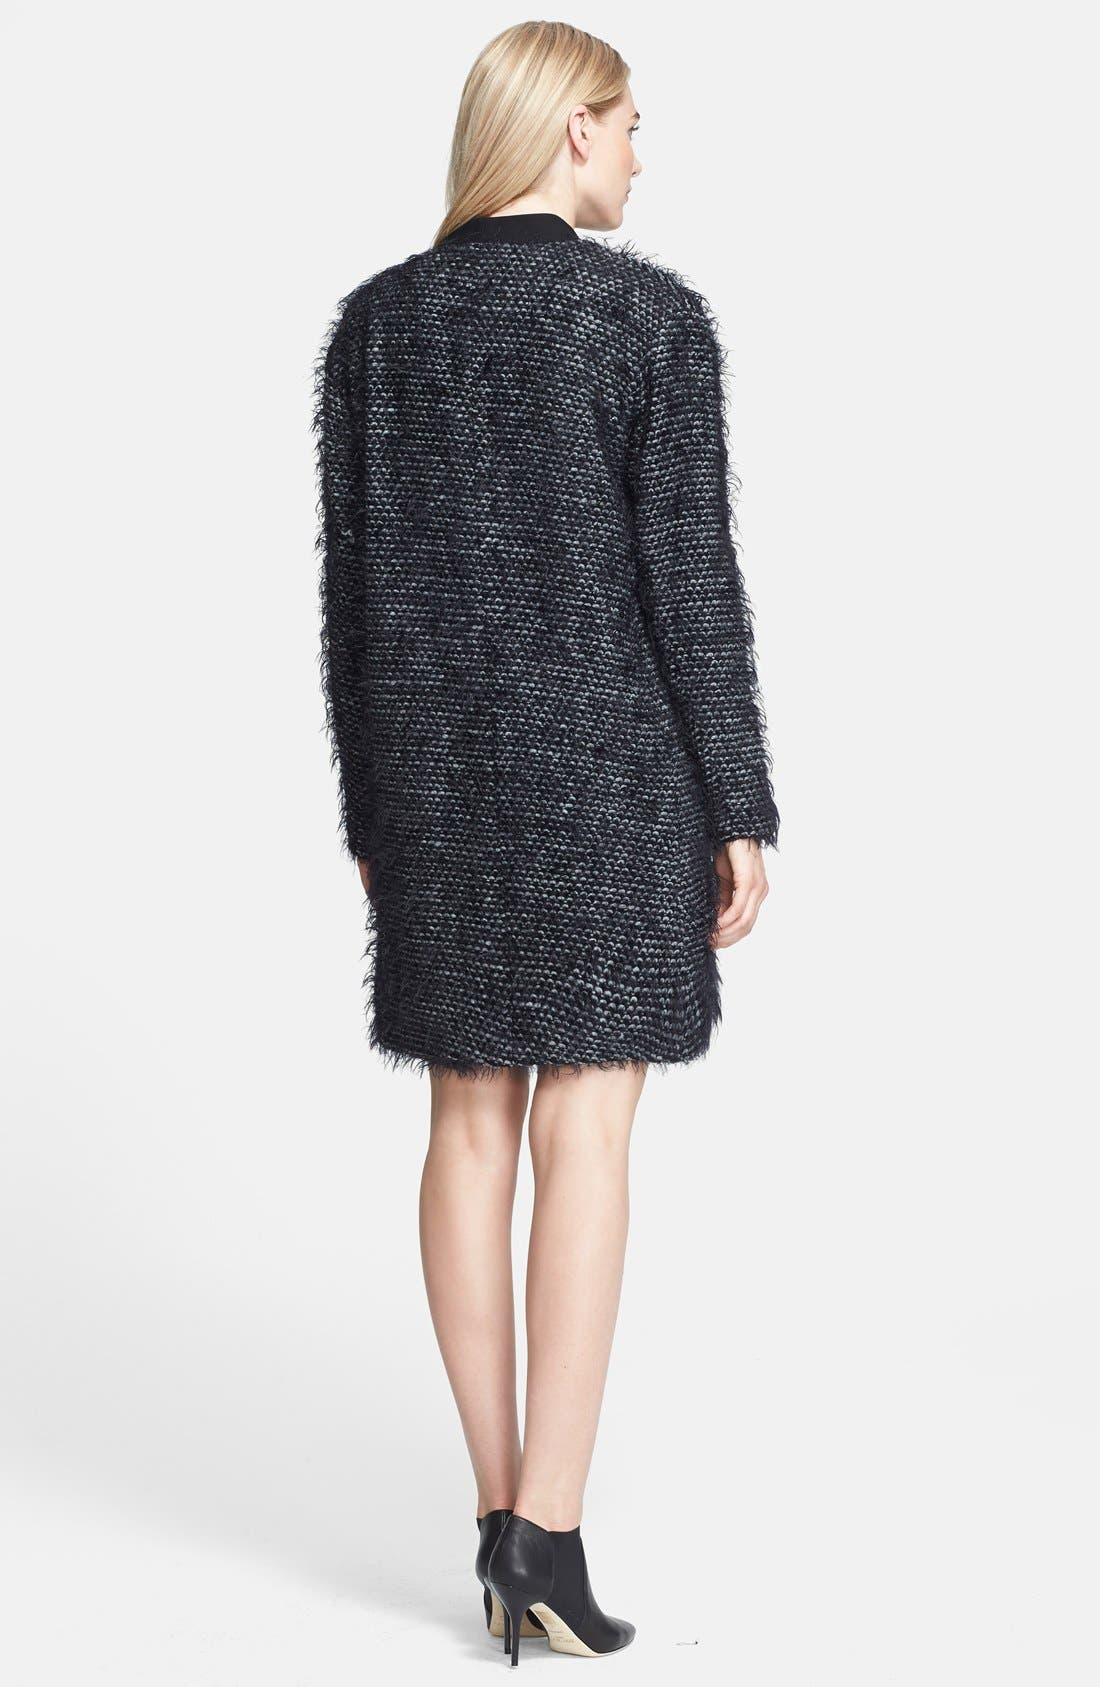 TIBI, Tweed Long Coat, Alternate thumbnail 3, color, 006